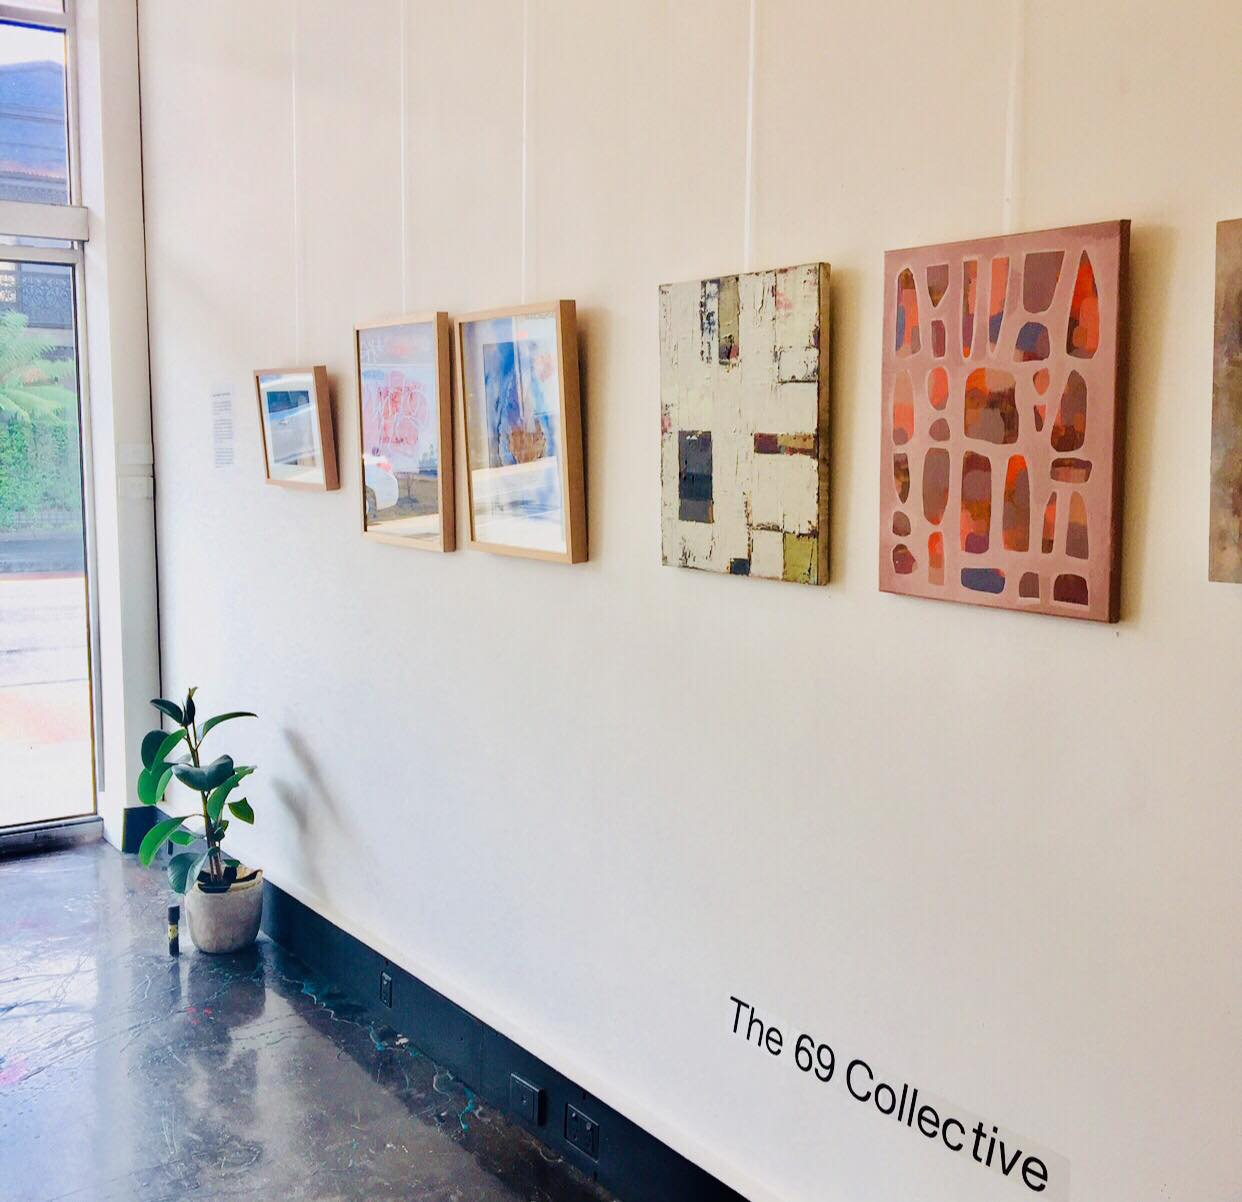 The 69 Collective Black Cat Gallery 1 2018.jpeg